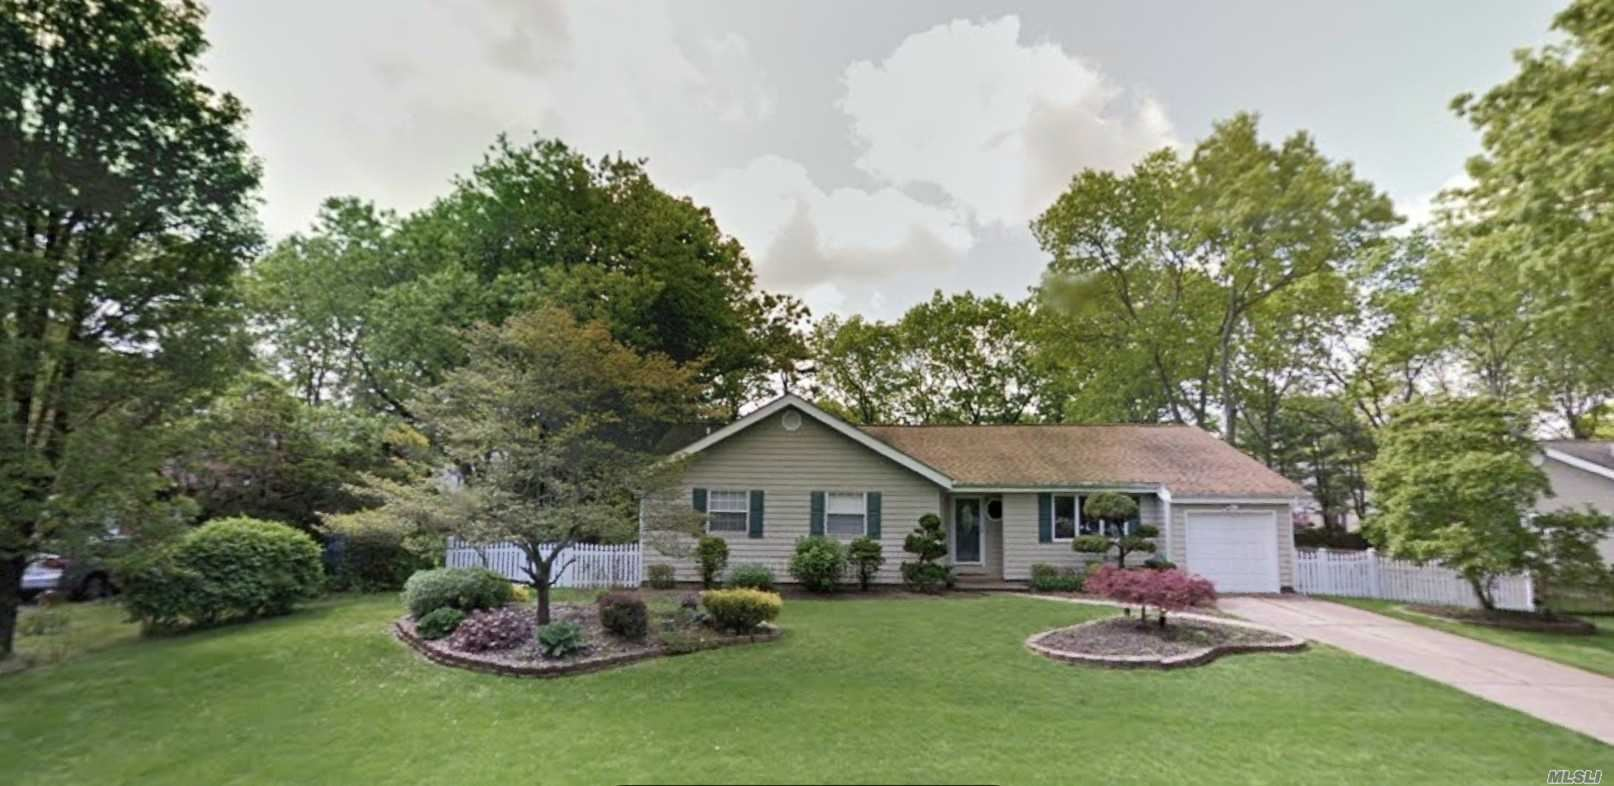 29 Concord Drive, Holtsville, NY 11742 - MLS#: 3199634